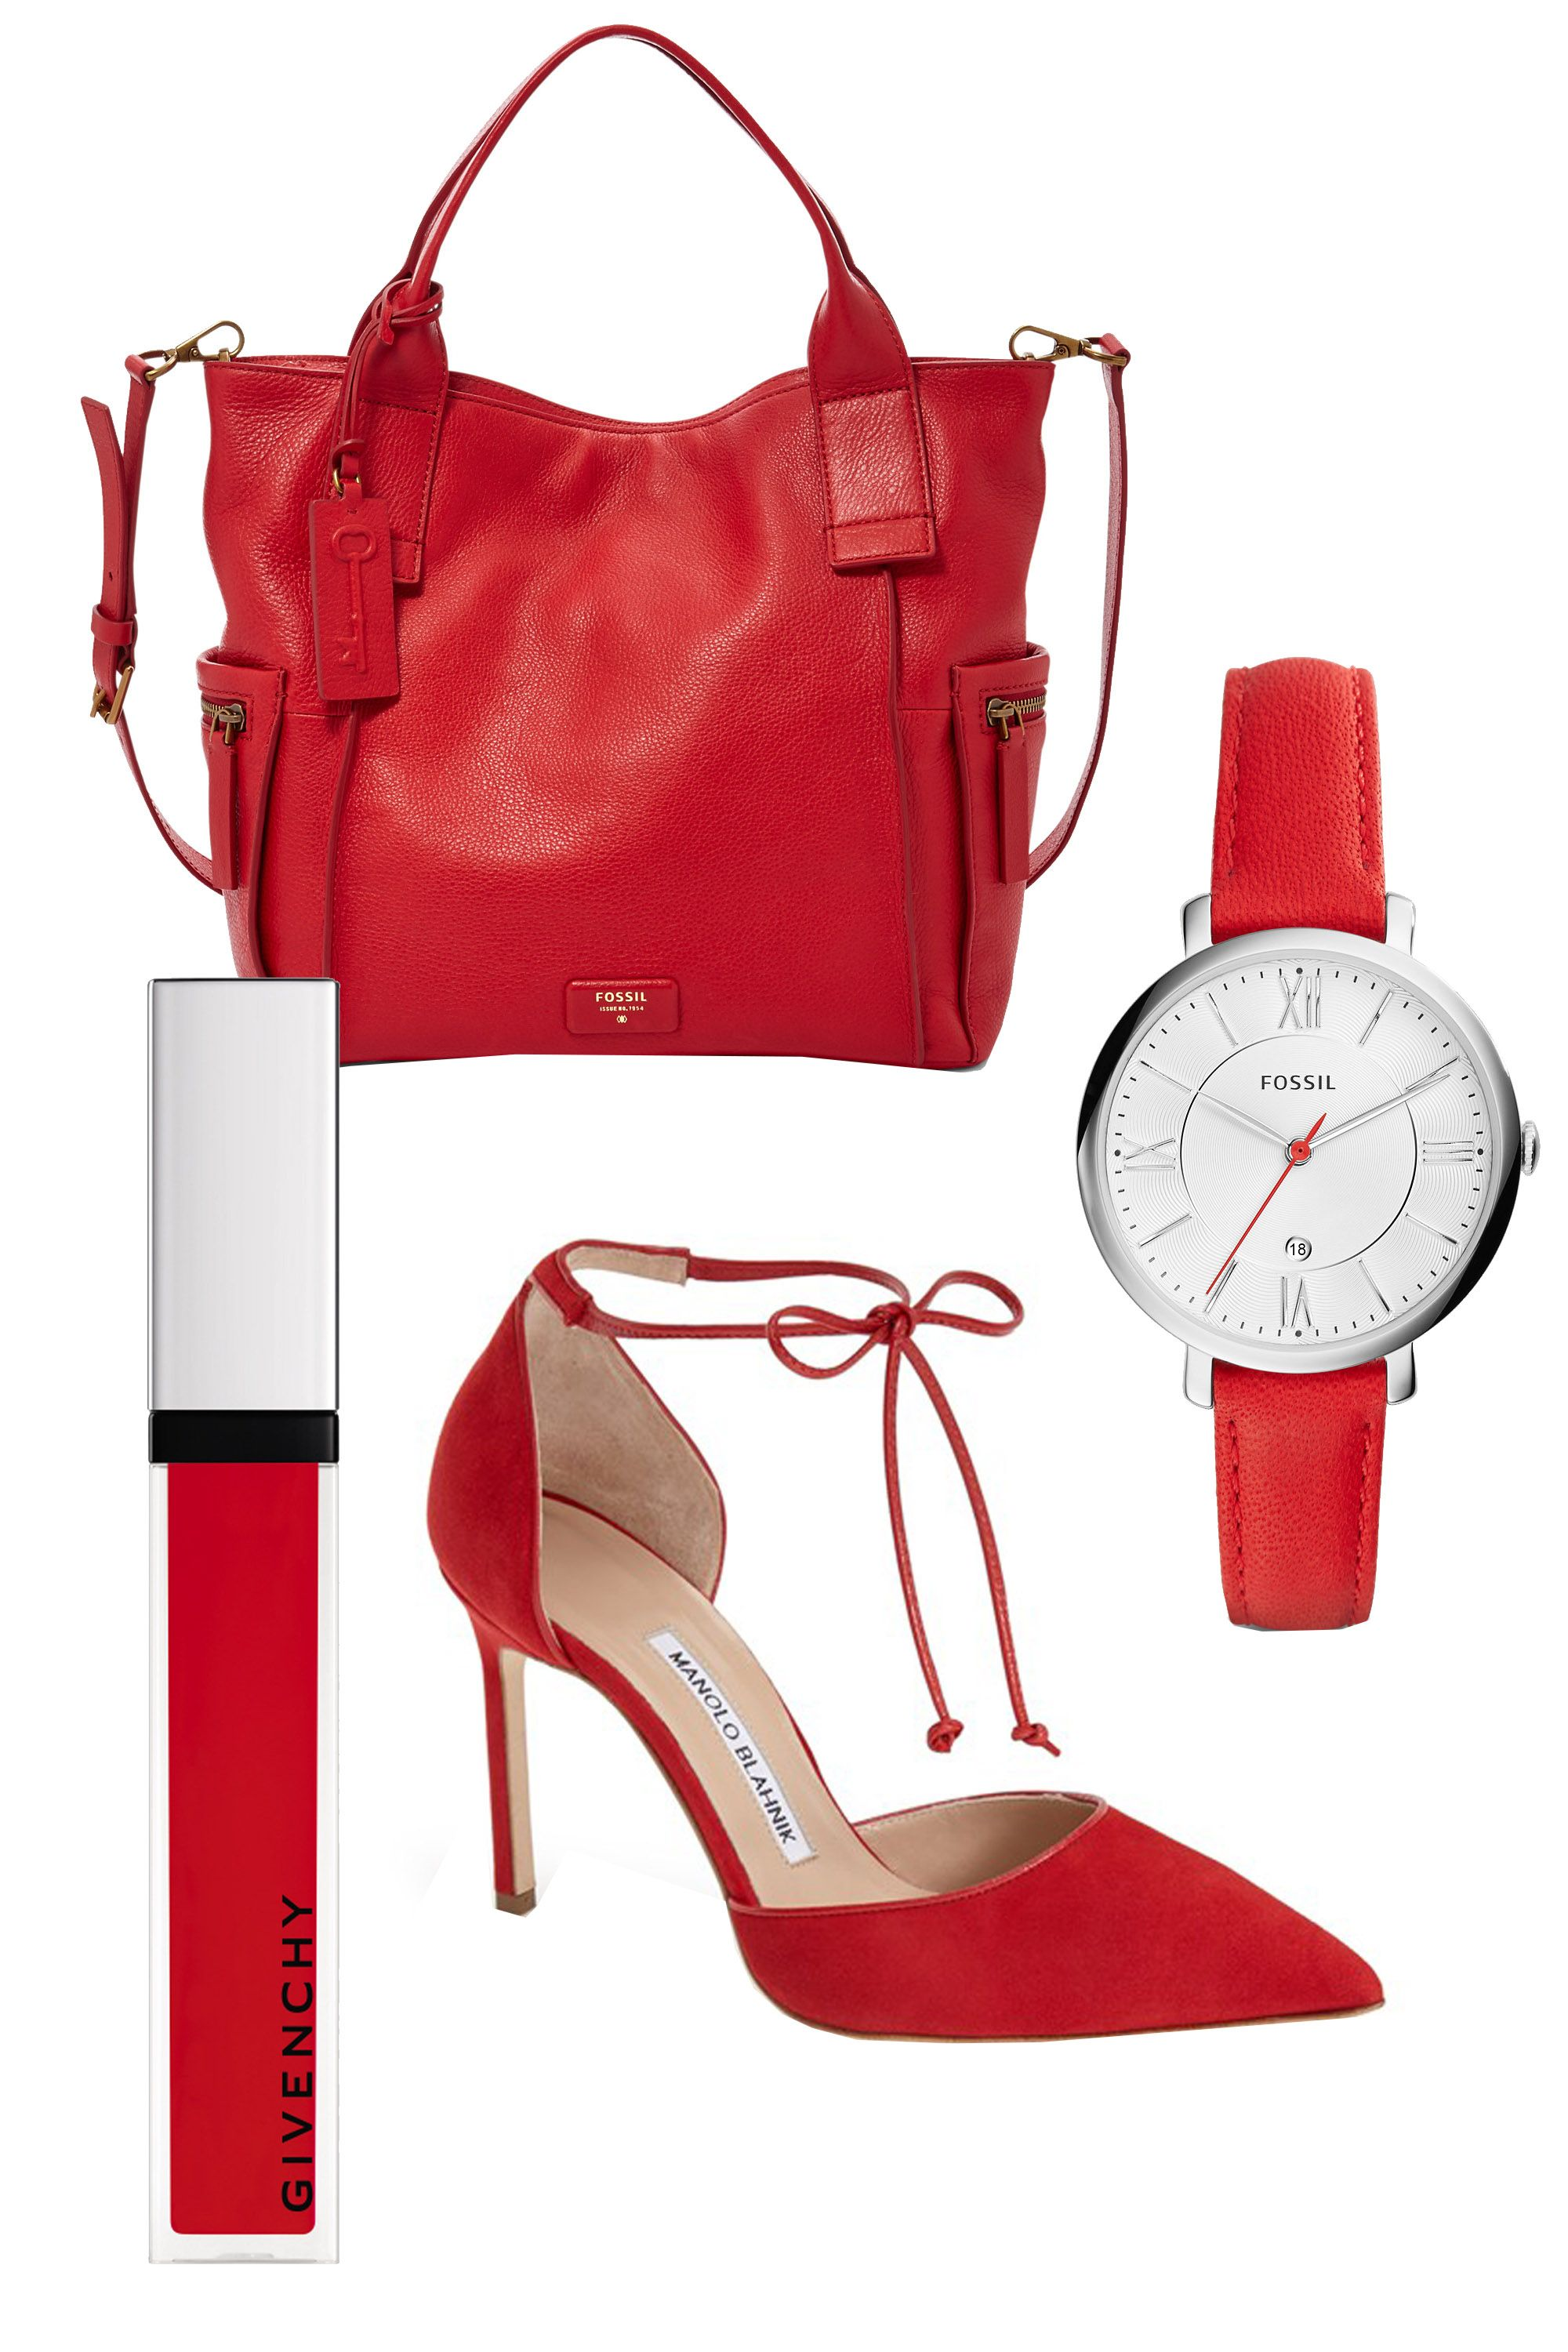 "<p>Yes, you <em>can</em> pile on bold red—with all your pieces in the same hue, you'll looked polished, not over-the-top. (Don't forget the red lip.)</p><p>Fossil Jacqueline Date Red Leather Watch, $95; <a href=""https://ad.doubleclick.net/ddm/clk/299580929;126521682;v"" target=""_blank"">fossil.com</a> </p><p>Fossil Emerson Satchel, $248; <a href=""https://ad.doubleclick.net/ddm/clk/299580928;126521685;x"" target=""_blank"">fossil.com</a> </p><p>Givenchy Beauty Gloss Révélateur, $31; <a href=""http://www.barneys.com/givenchy-beauty-gloss-r%C3%A9v%C3%A9lateur-504221292.html#prefn1=productAccess&sz=48&start=133&prefv1=isPublic"" target=""_blank"">fossil.com</a> </p><p>Manolo Blahnik Ankle Tie d'Orsay Pump, $745; <a href=""http://shop.nordstrom.com/s/manolo-blahnik-ankle-tie-dorsay-pump-women/4071362?origin=category-personalizedsort&contextualcategoryid=0&fashionColor=&resultback=2155"" target=""_blank"">nordstrom.com</a></p>"